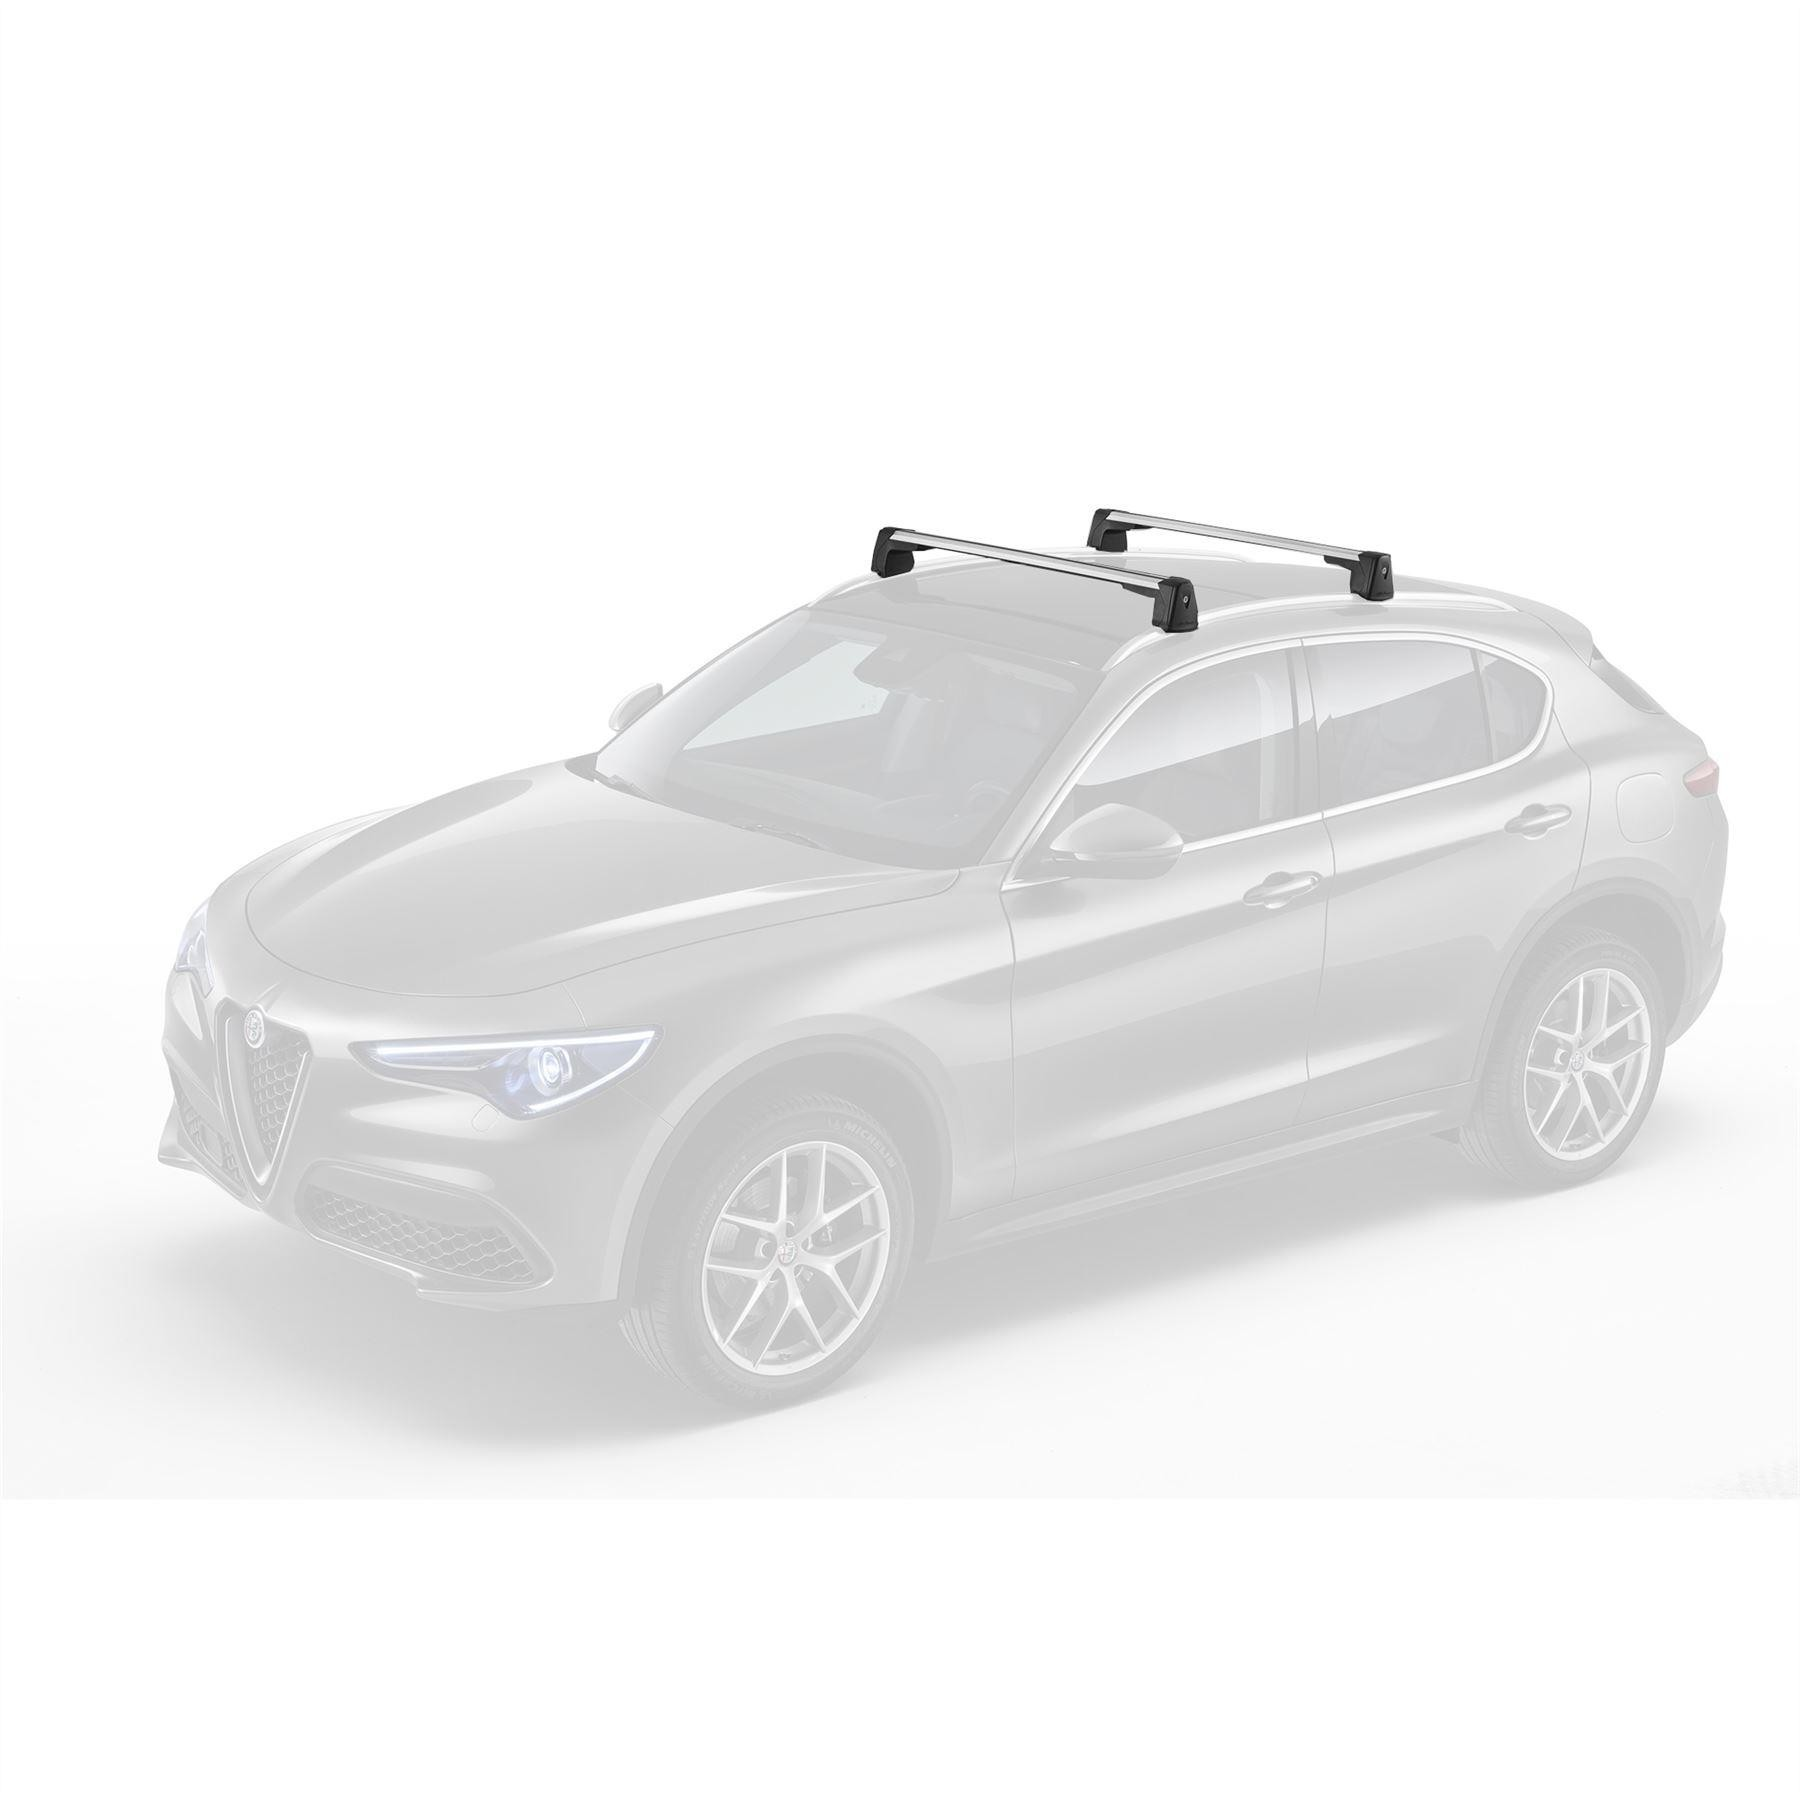 Stelvio Transport Cross Roof Bars - longitudinal Fit Only